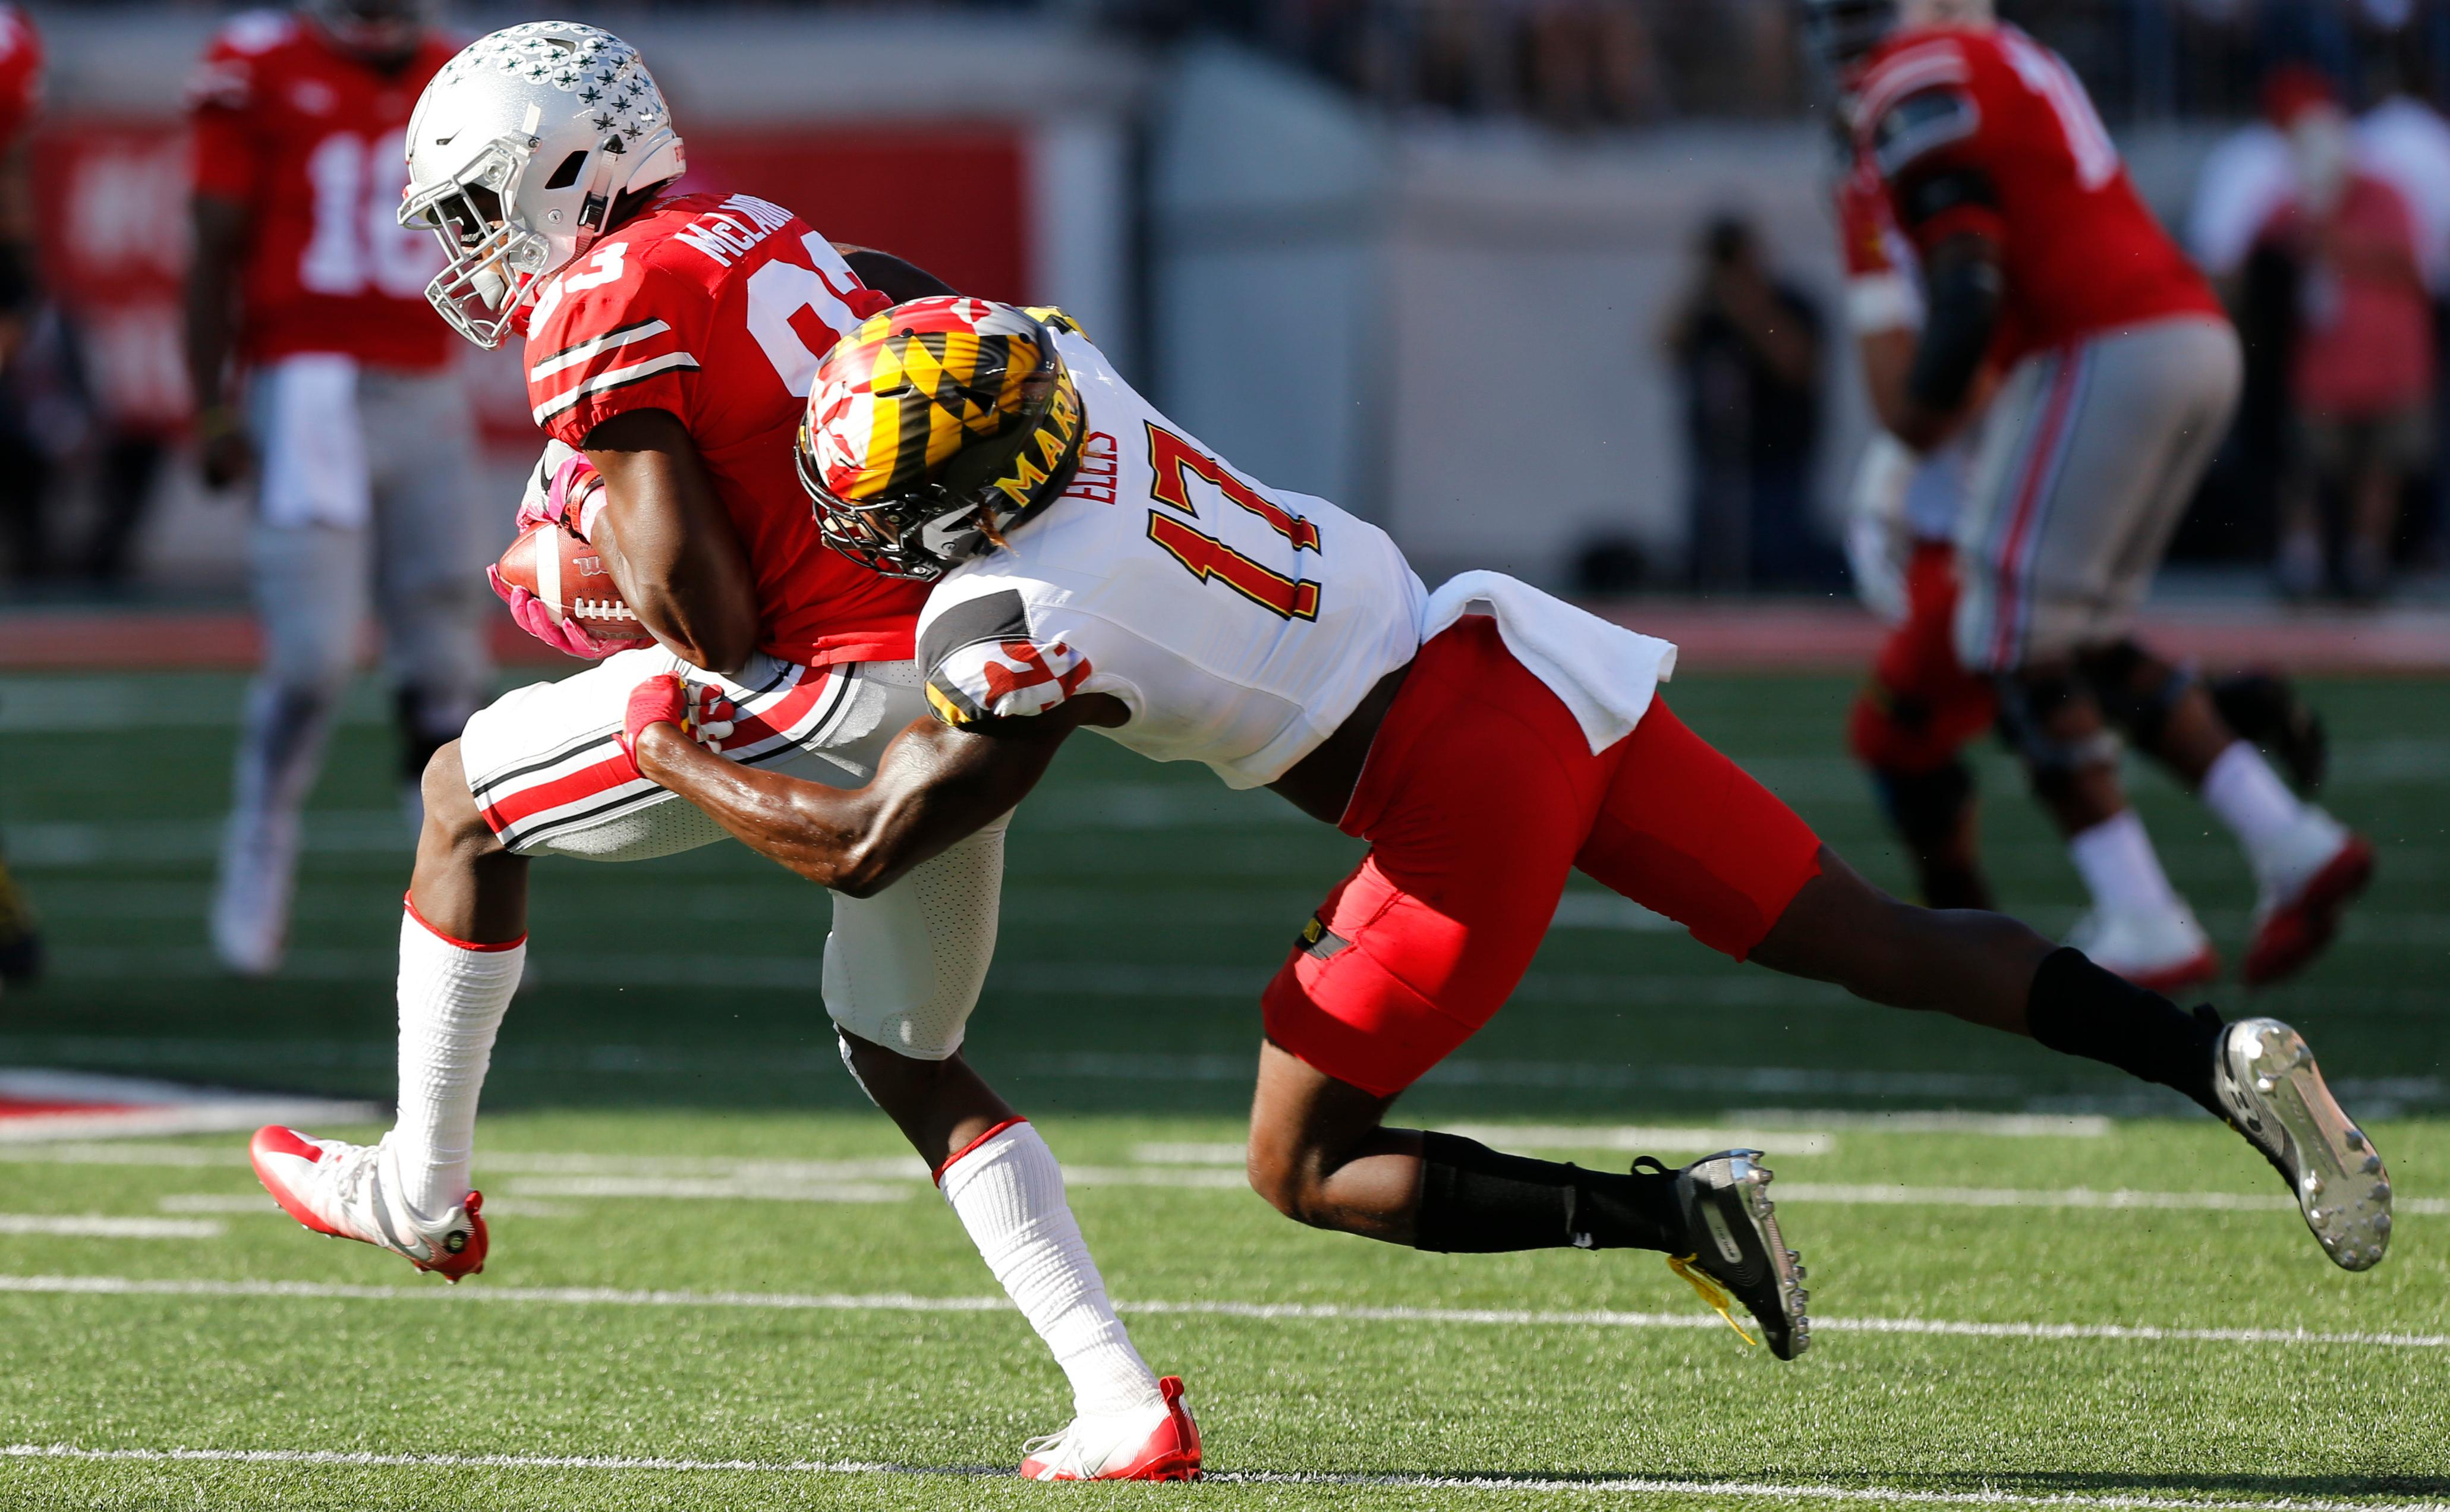 Maryland defensive back Tino Ellis, right, tackles Ohio State receiver Terry McLaurin during the first half of an NCAA college football game Saturday, Oct. 7, 2017, in Columbus, Ohio. (AP Photo/Jay LaPrete)